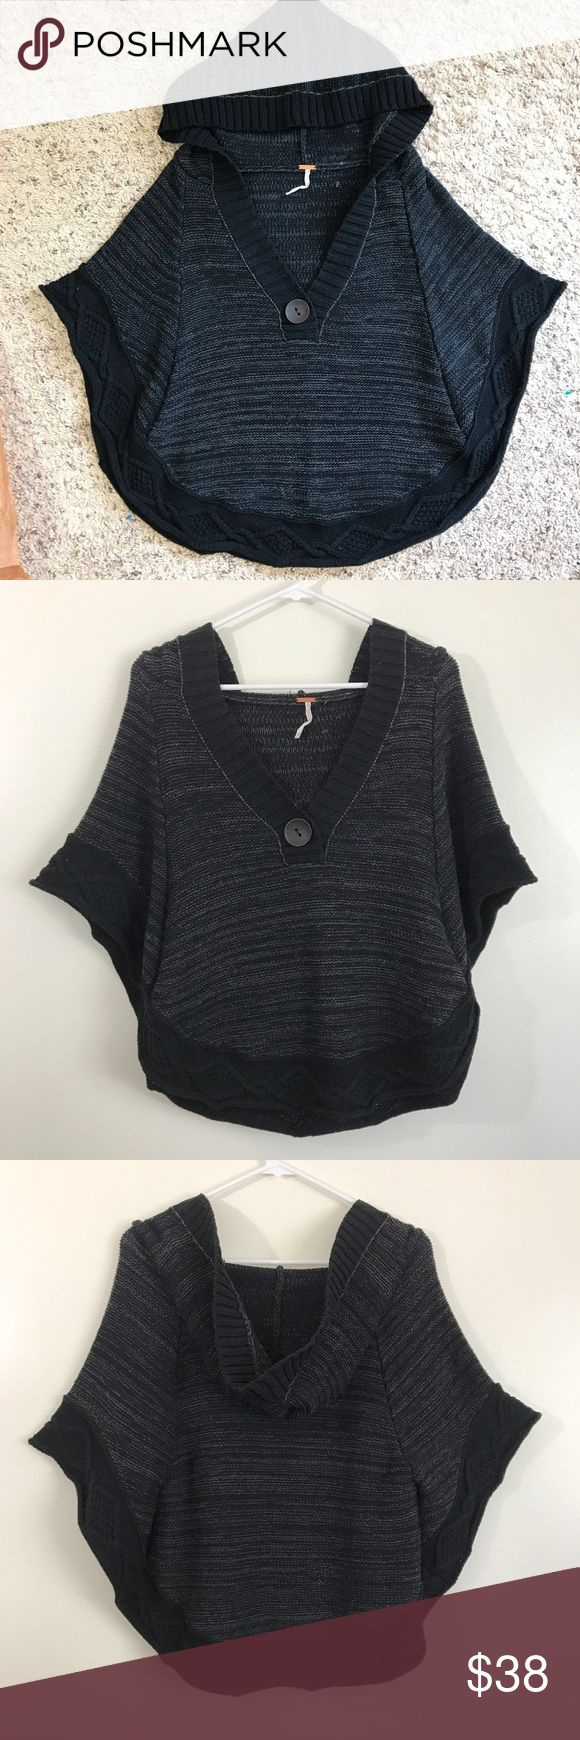 Free People gray black poncho knit sweater top Excellent condition  Free people  Size xs/s   Very cute and stylish poncho hoodie sweater  Dark gray to black color Free People Tops Sweatshirts & Hoodies